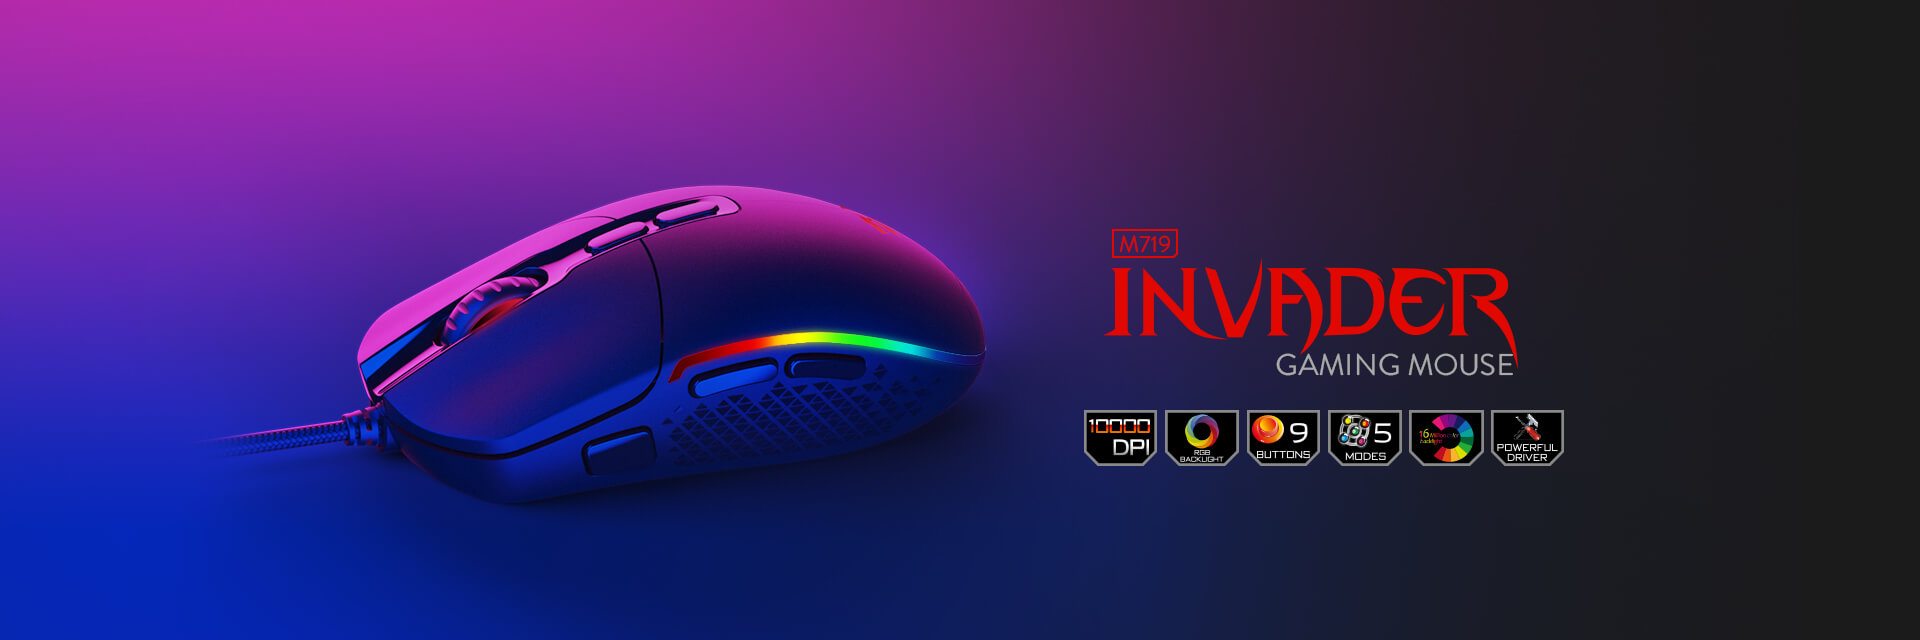 redragon invader m719 software